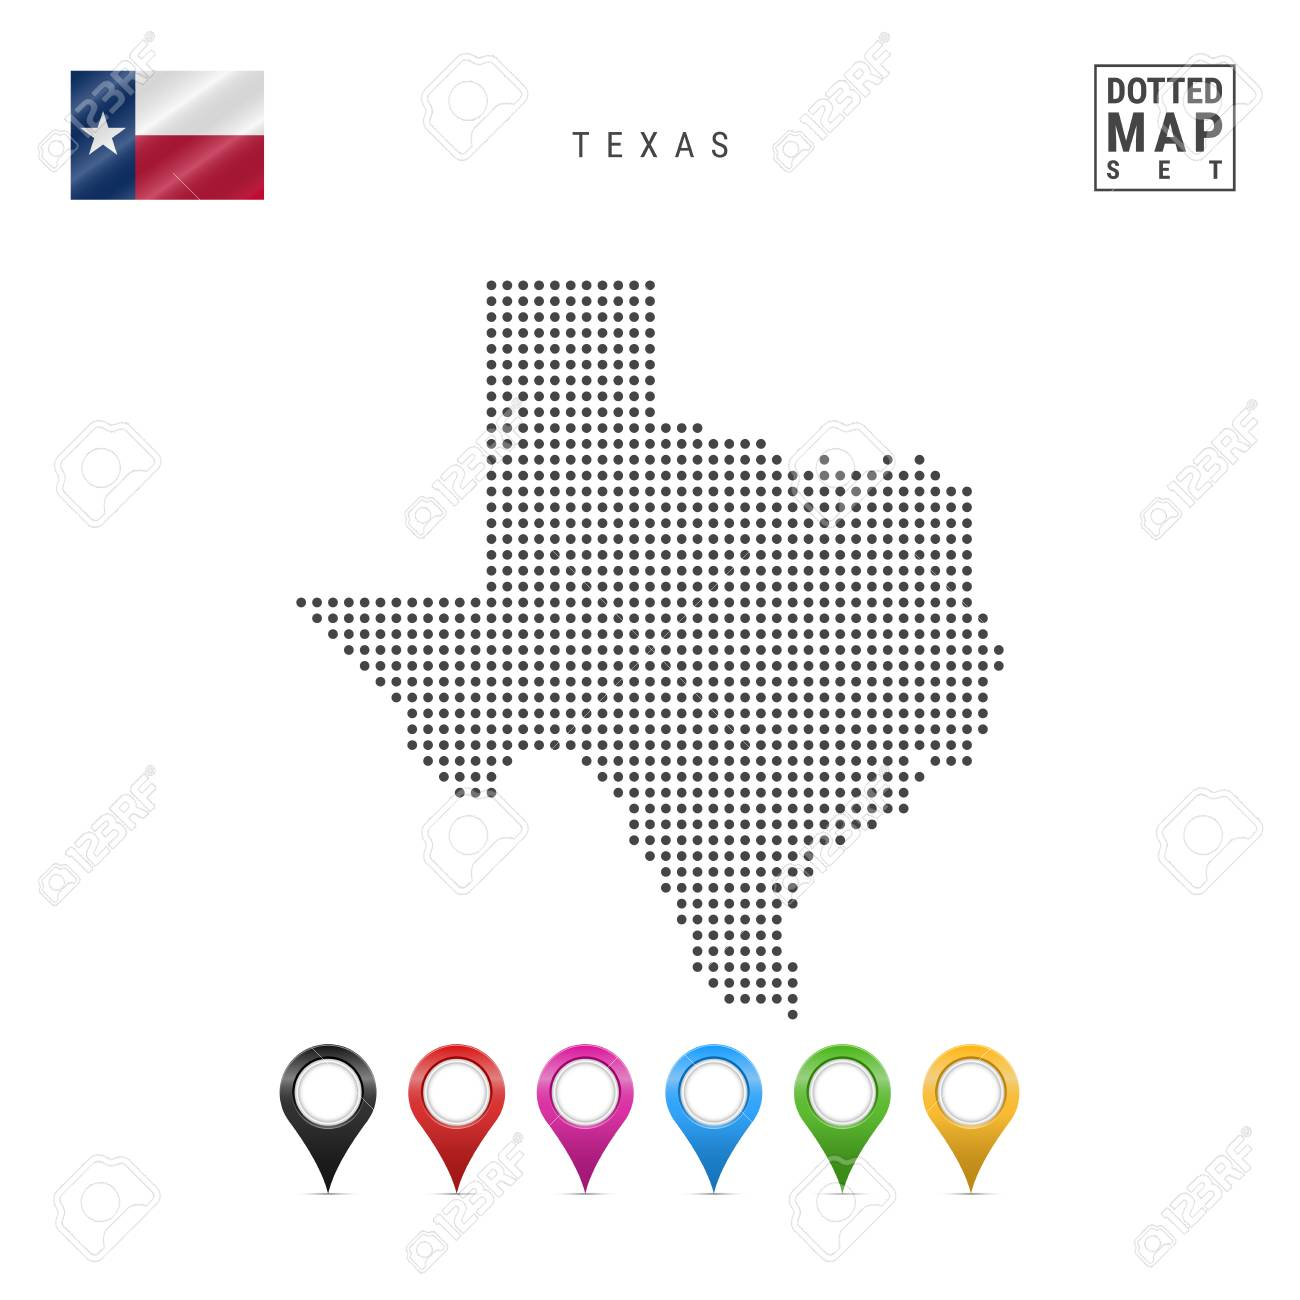 Dots Pattern Vector Map Of Texas Stylized Simple Silhouette